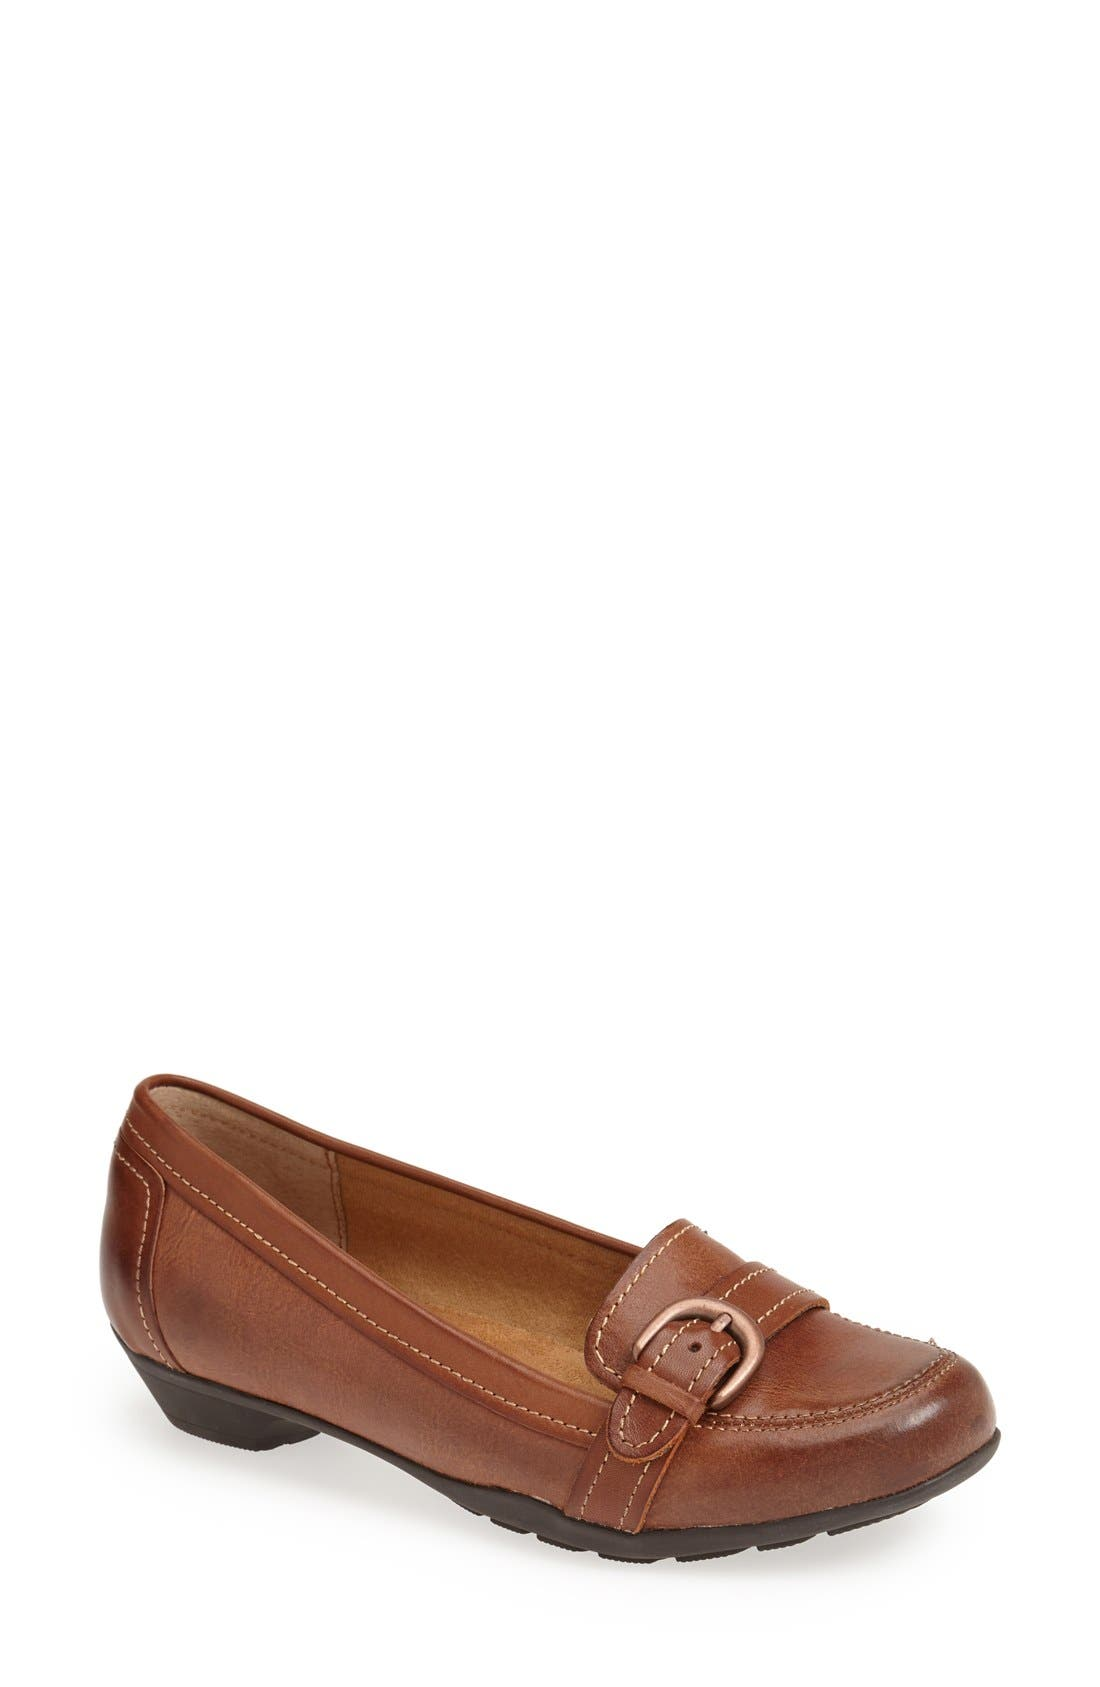 Main Image - Softspots 'Parson' Leather Loafer (Women)